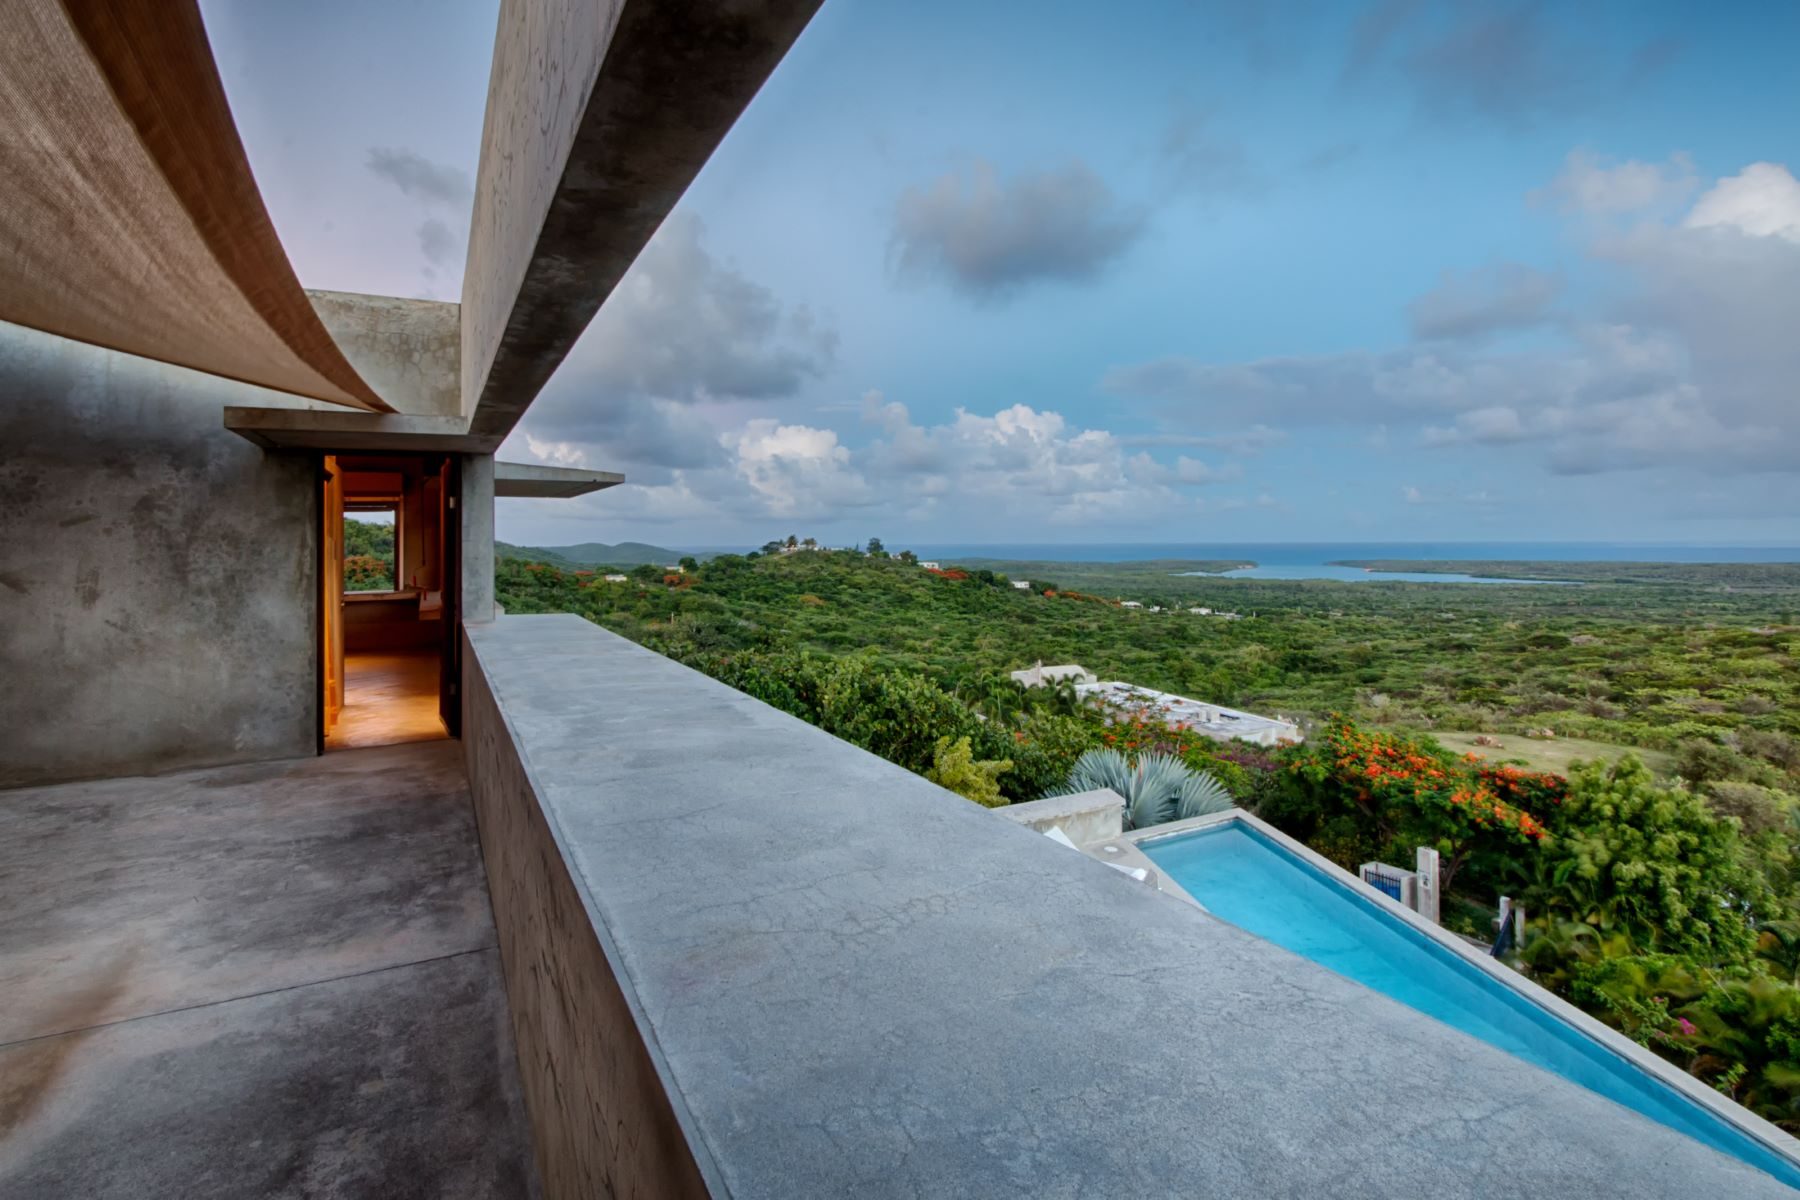 Additional photo for property listing at Bluffside Vieques Island Marvel KM 1.8, Carr 997 Puerto Real Vieques, 00765 Porto Rico